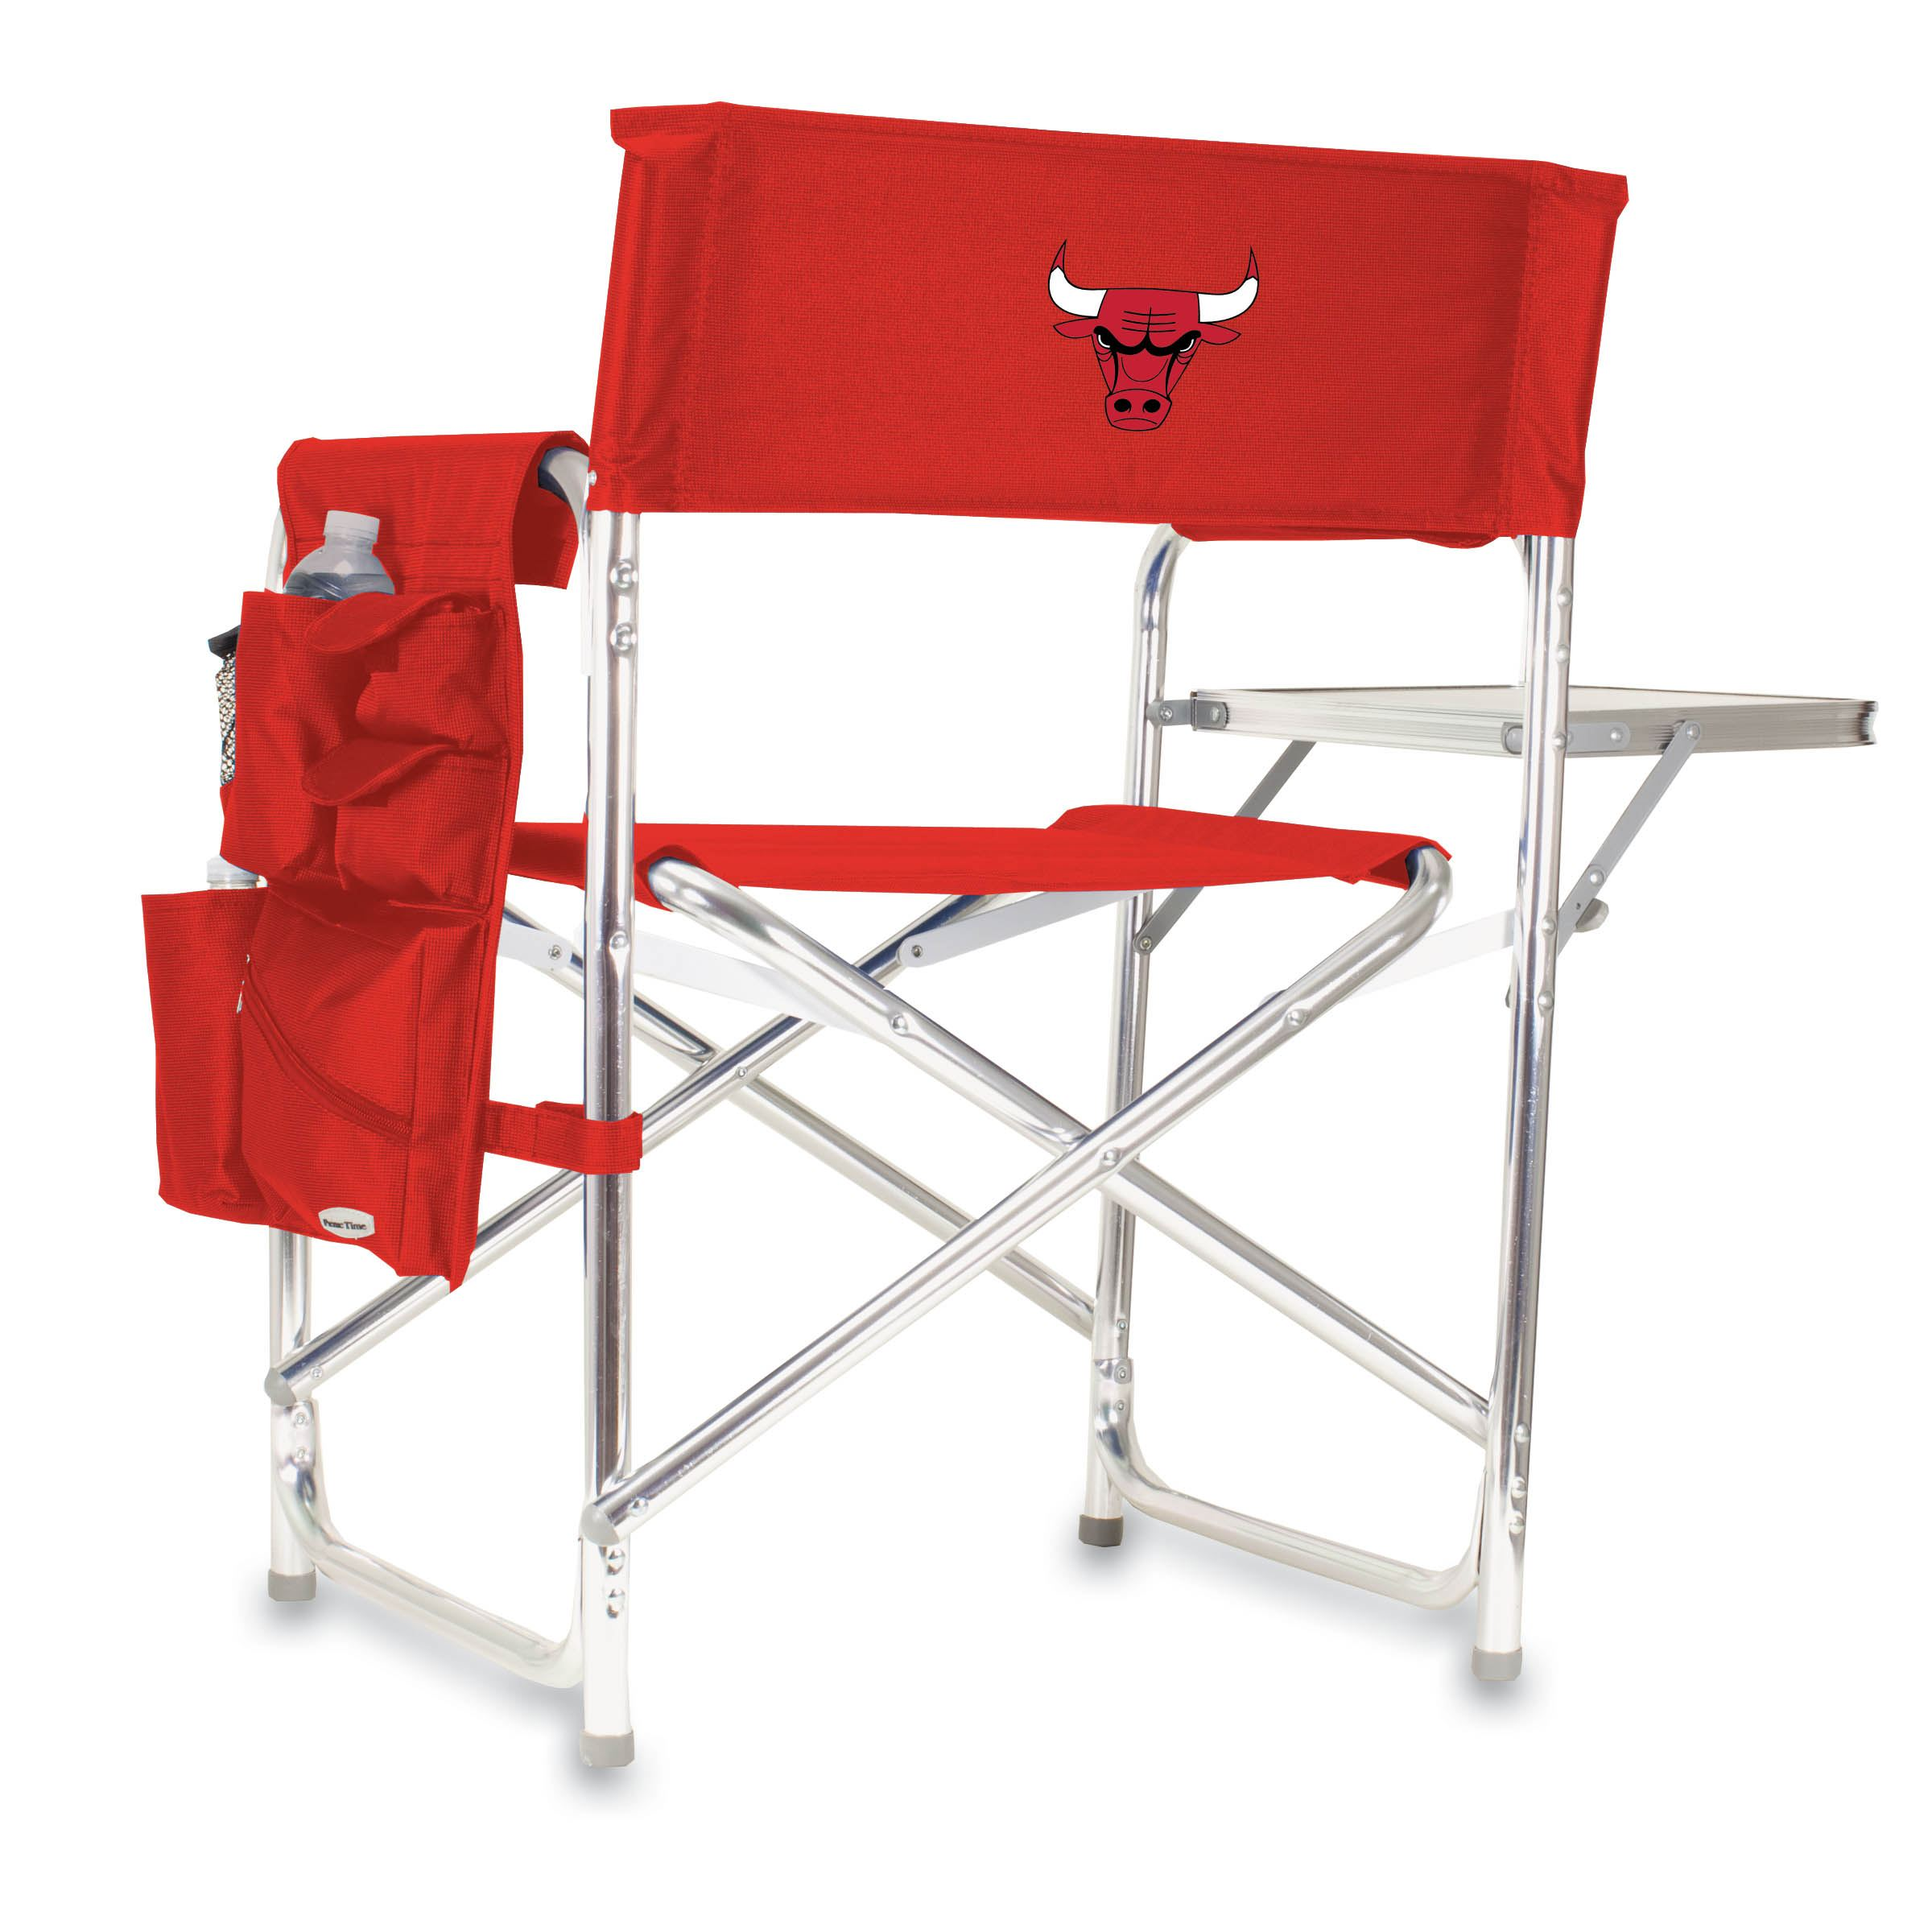 Picnic Time Nba Sports Chair Chicago Bulls